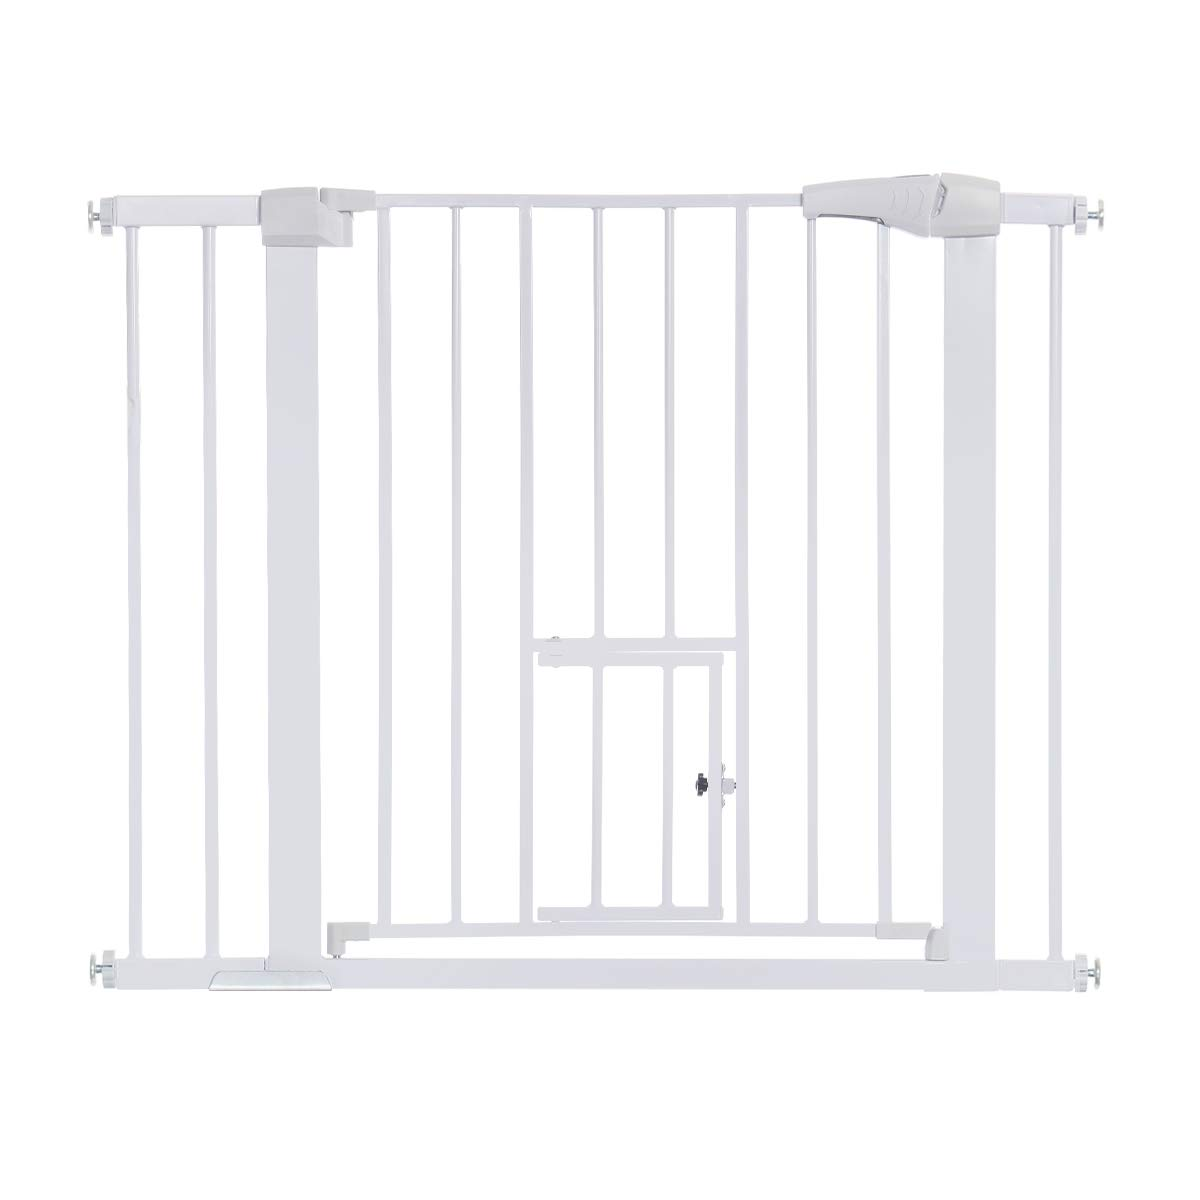 KingSo 40.5 Auto Close Safety Baby Gate Extra Wide Metal Walk Thru Baby Gate with Pet Door for House Stairs Doorways Hallways, Includes 2.75 5.5 Extension Kit, 4 Pressure Bolts, 1 Key White